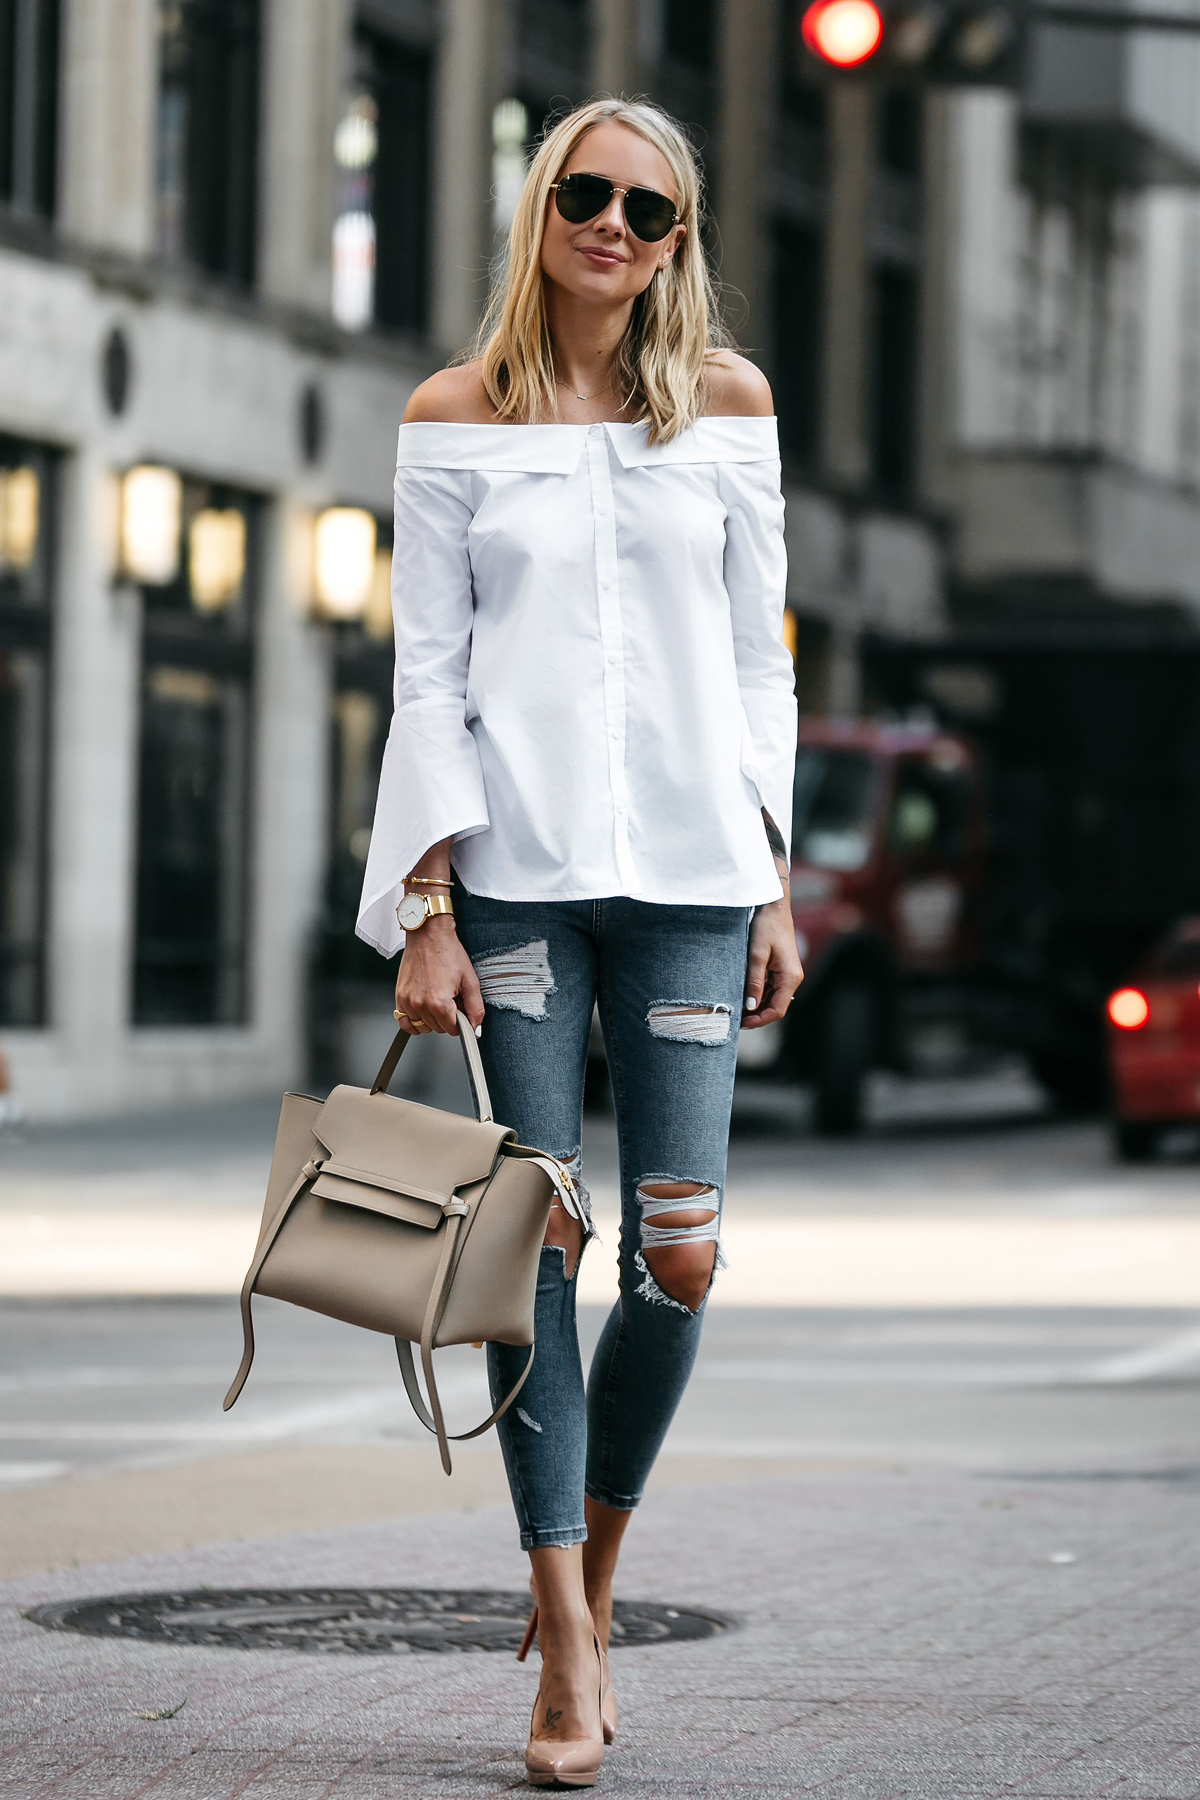 Blonde Woman Wearing Nordstrom Anniversary Sale White Bell-Sleeve off-the-shoulder Top Topshop Denim Ripped Skinny Outfit Jeans Christian Louboutin Nude Pumps Celine Belt Bag Celine Aviator Sunglasses Fashion Jackson Dallas Blogger Fashion Blogger Street Style